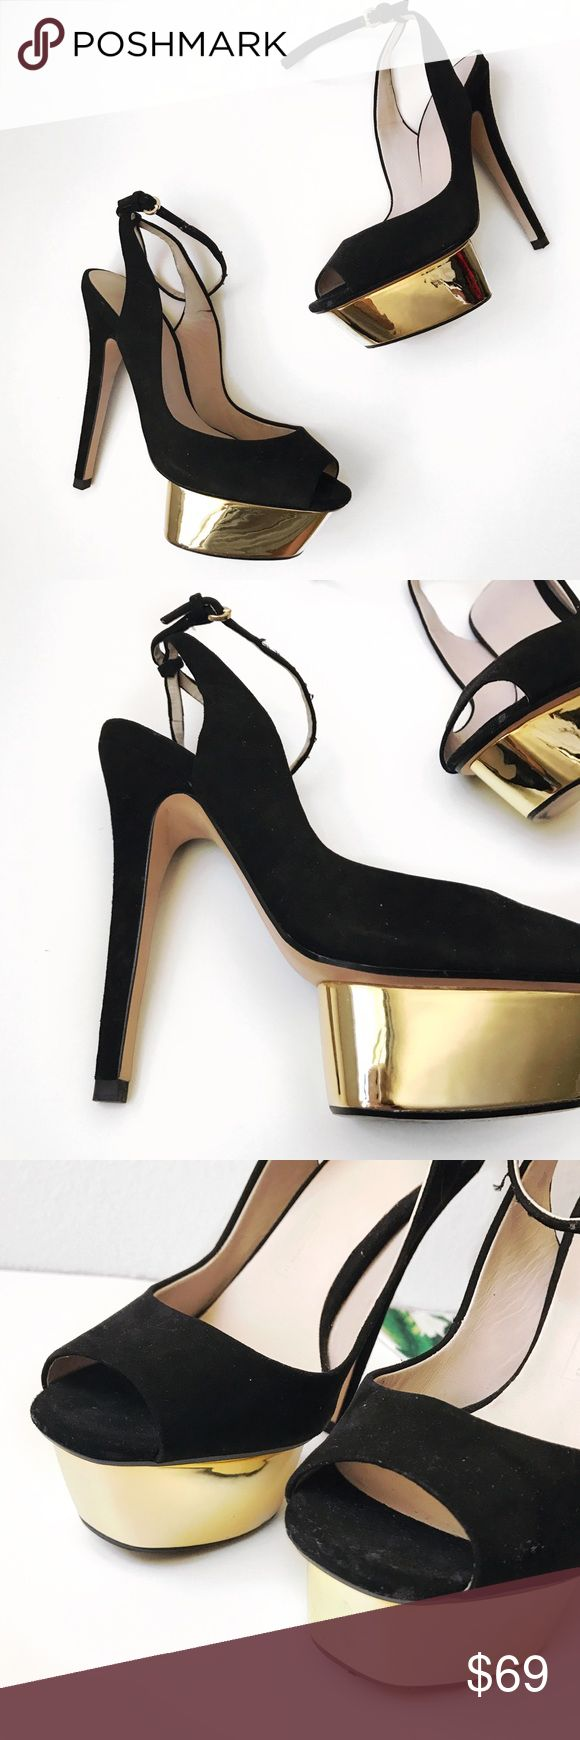 Zara Black Suede Gold Platform Heels Sky high sexy heels with a 2 inch gold platform that makes them stand out and makes the shoes comfortable to walk in. Worn once.  💕Offers welcome on single items and on bundles. Take 20% off your bundle automatically at check out. Happy Poshing!💕 Zara Shoes Heels